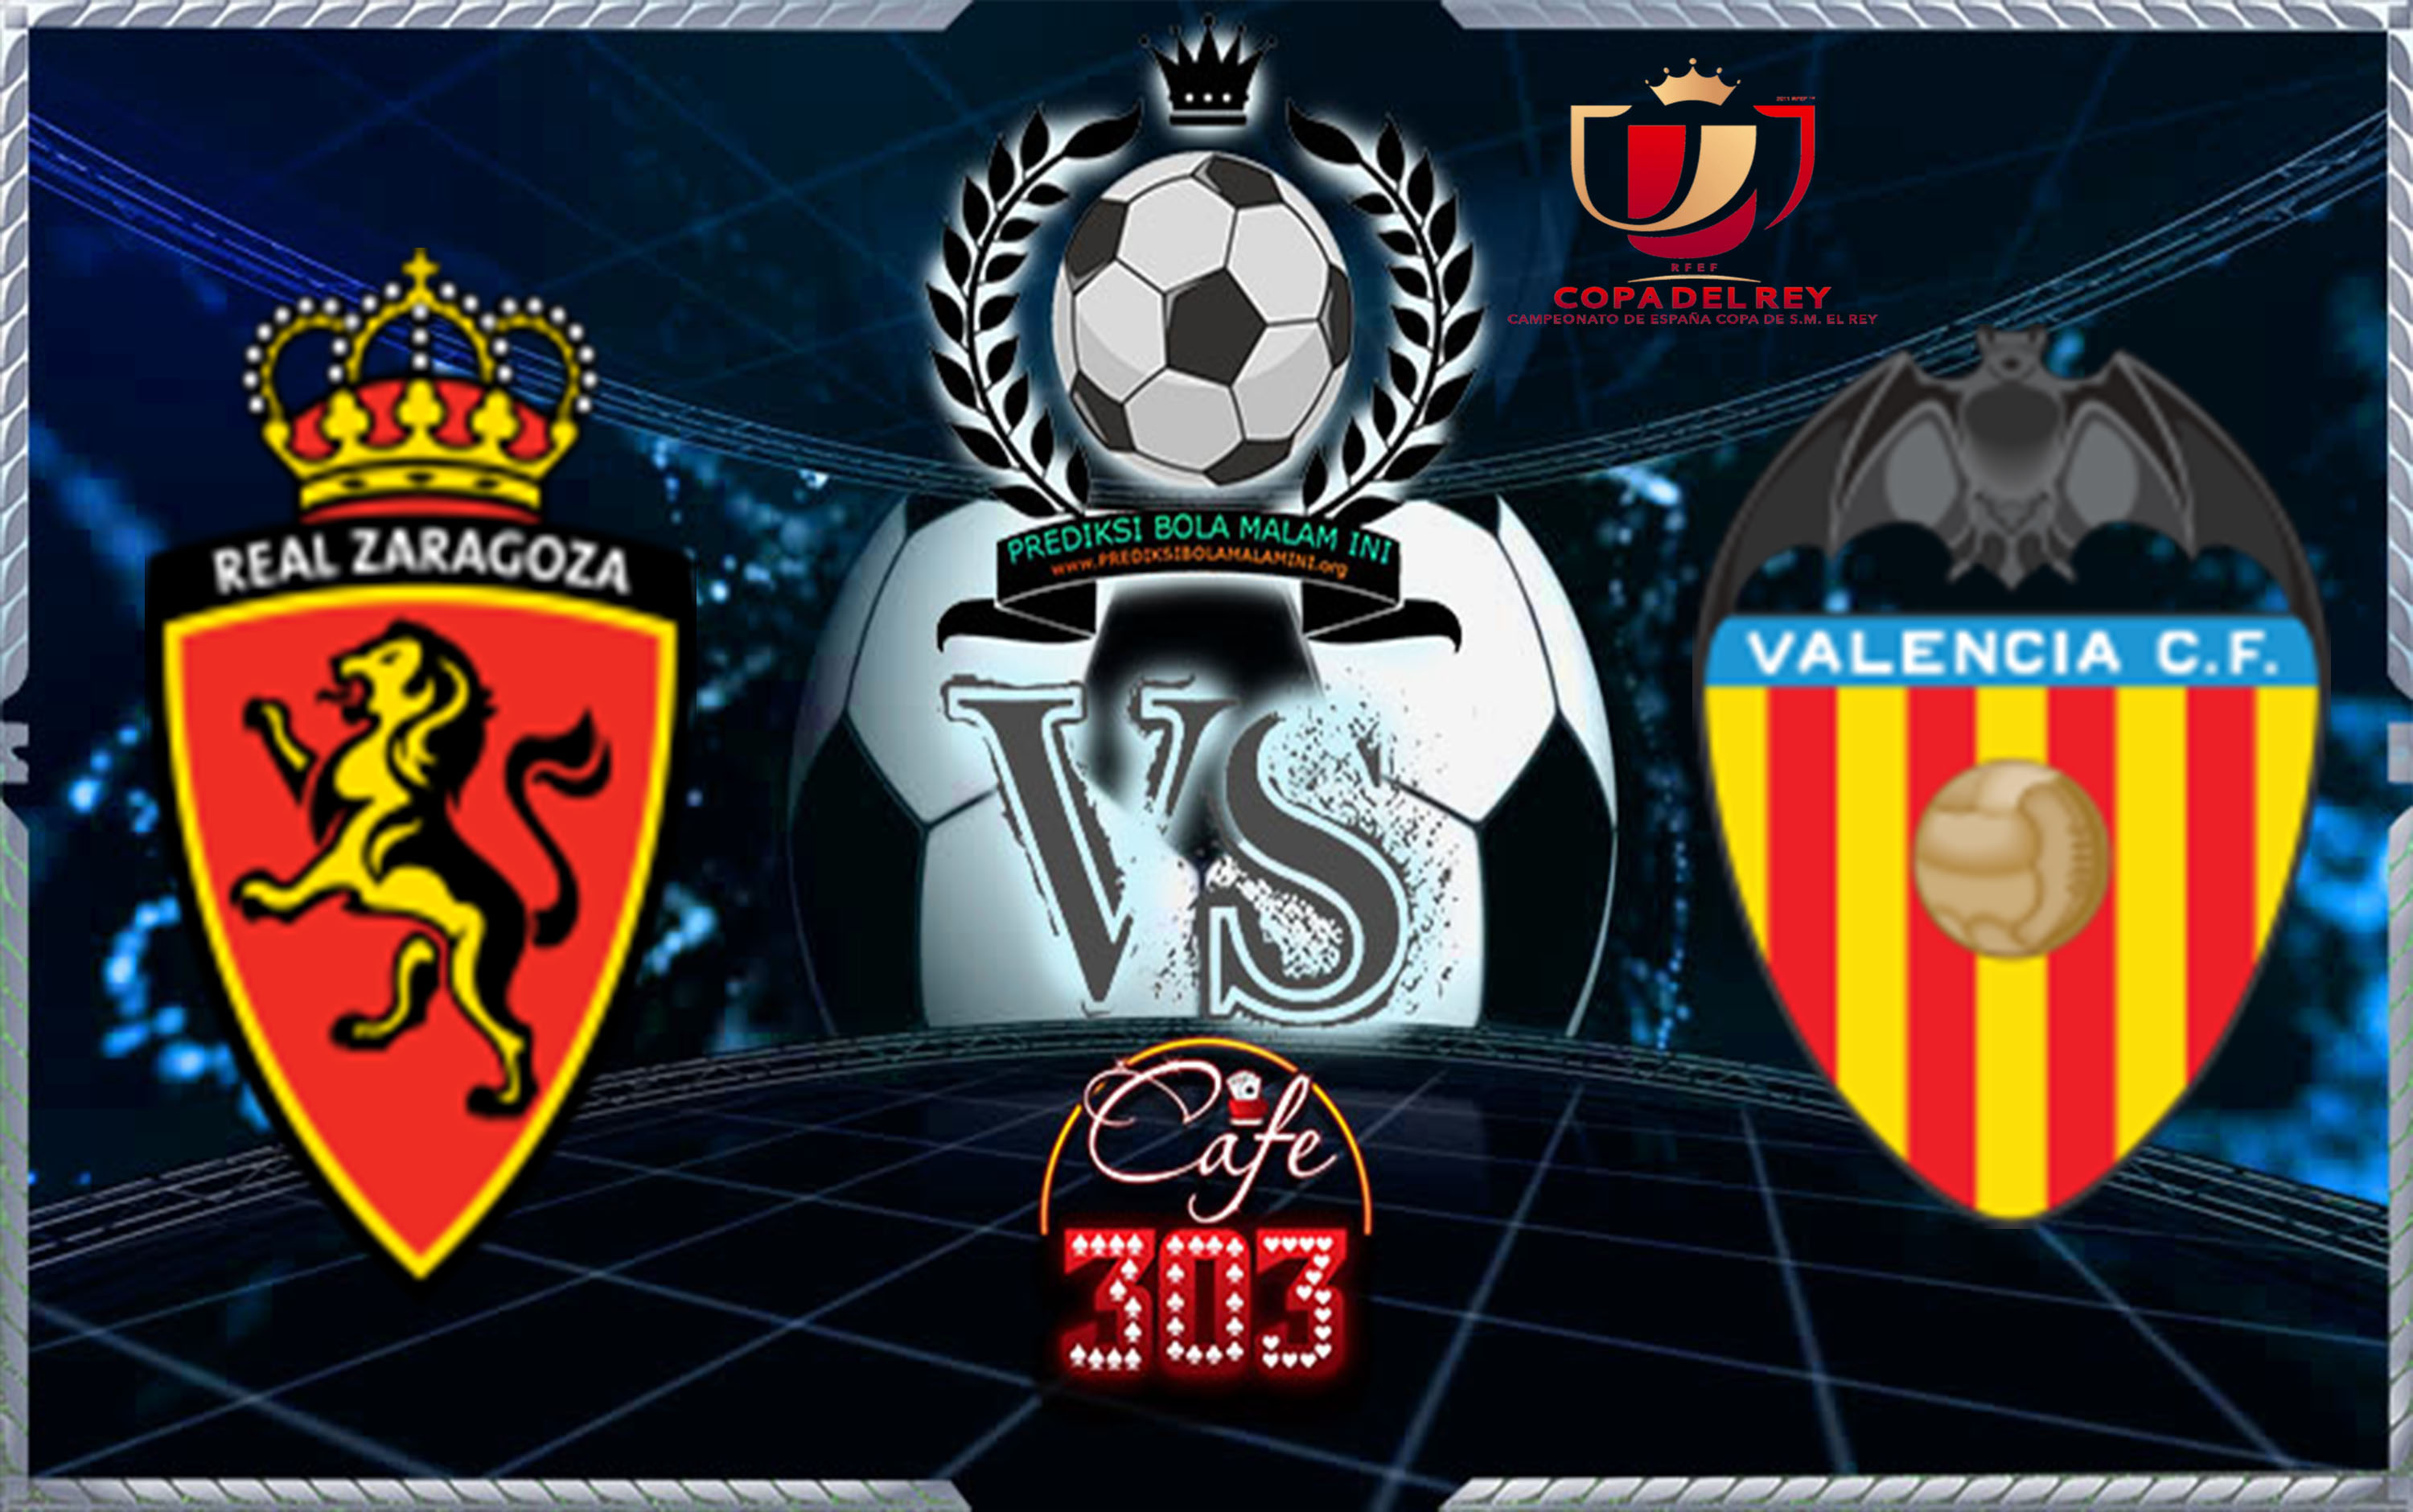 Prediksi Skor REAL ZARAGOZA Vs VALENCIA 25 October 2017